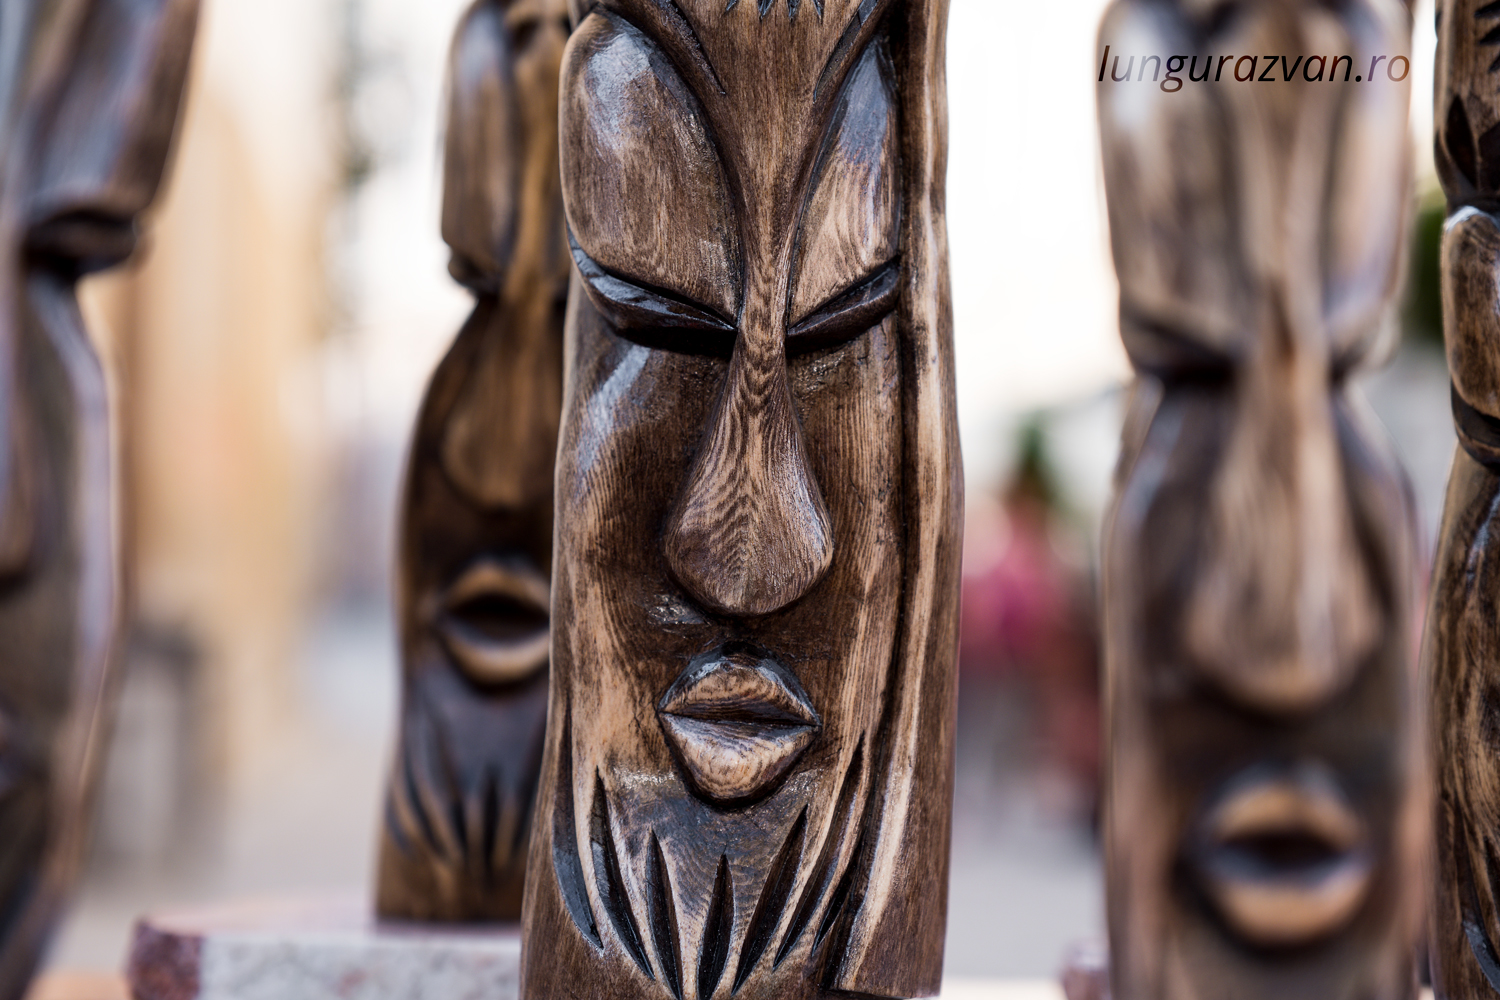 Looking Into One's Soul. A totem sculpted from raw pine wood root.